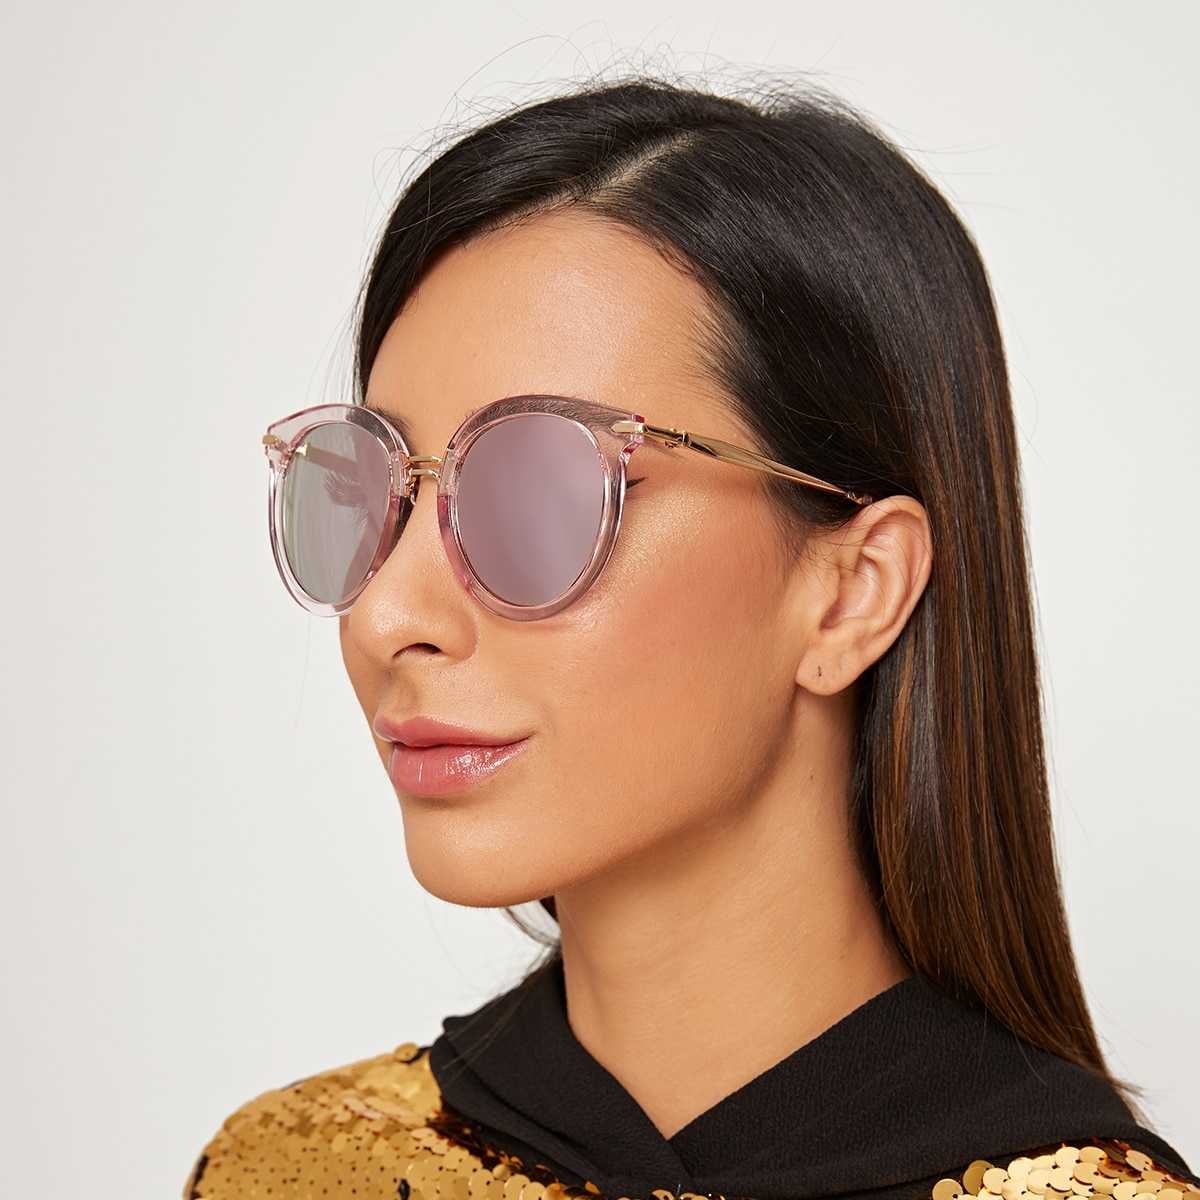 Two Tone Transparent Frame Sunglasses With Case in Pink by ROMWE on GOOFASH